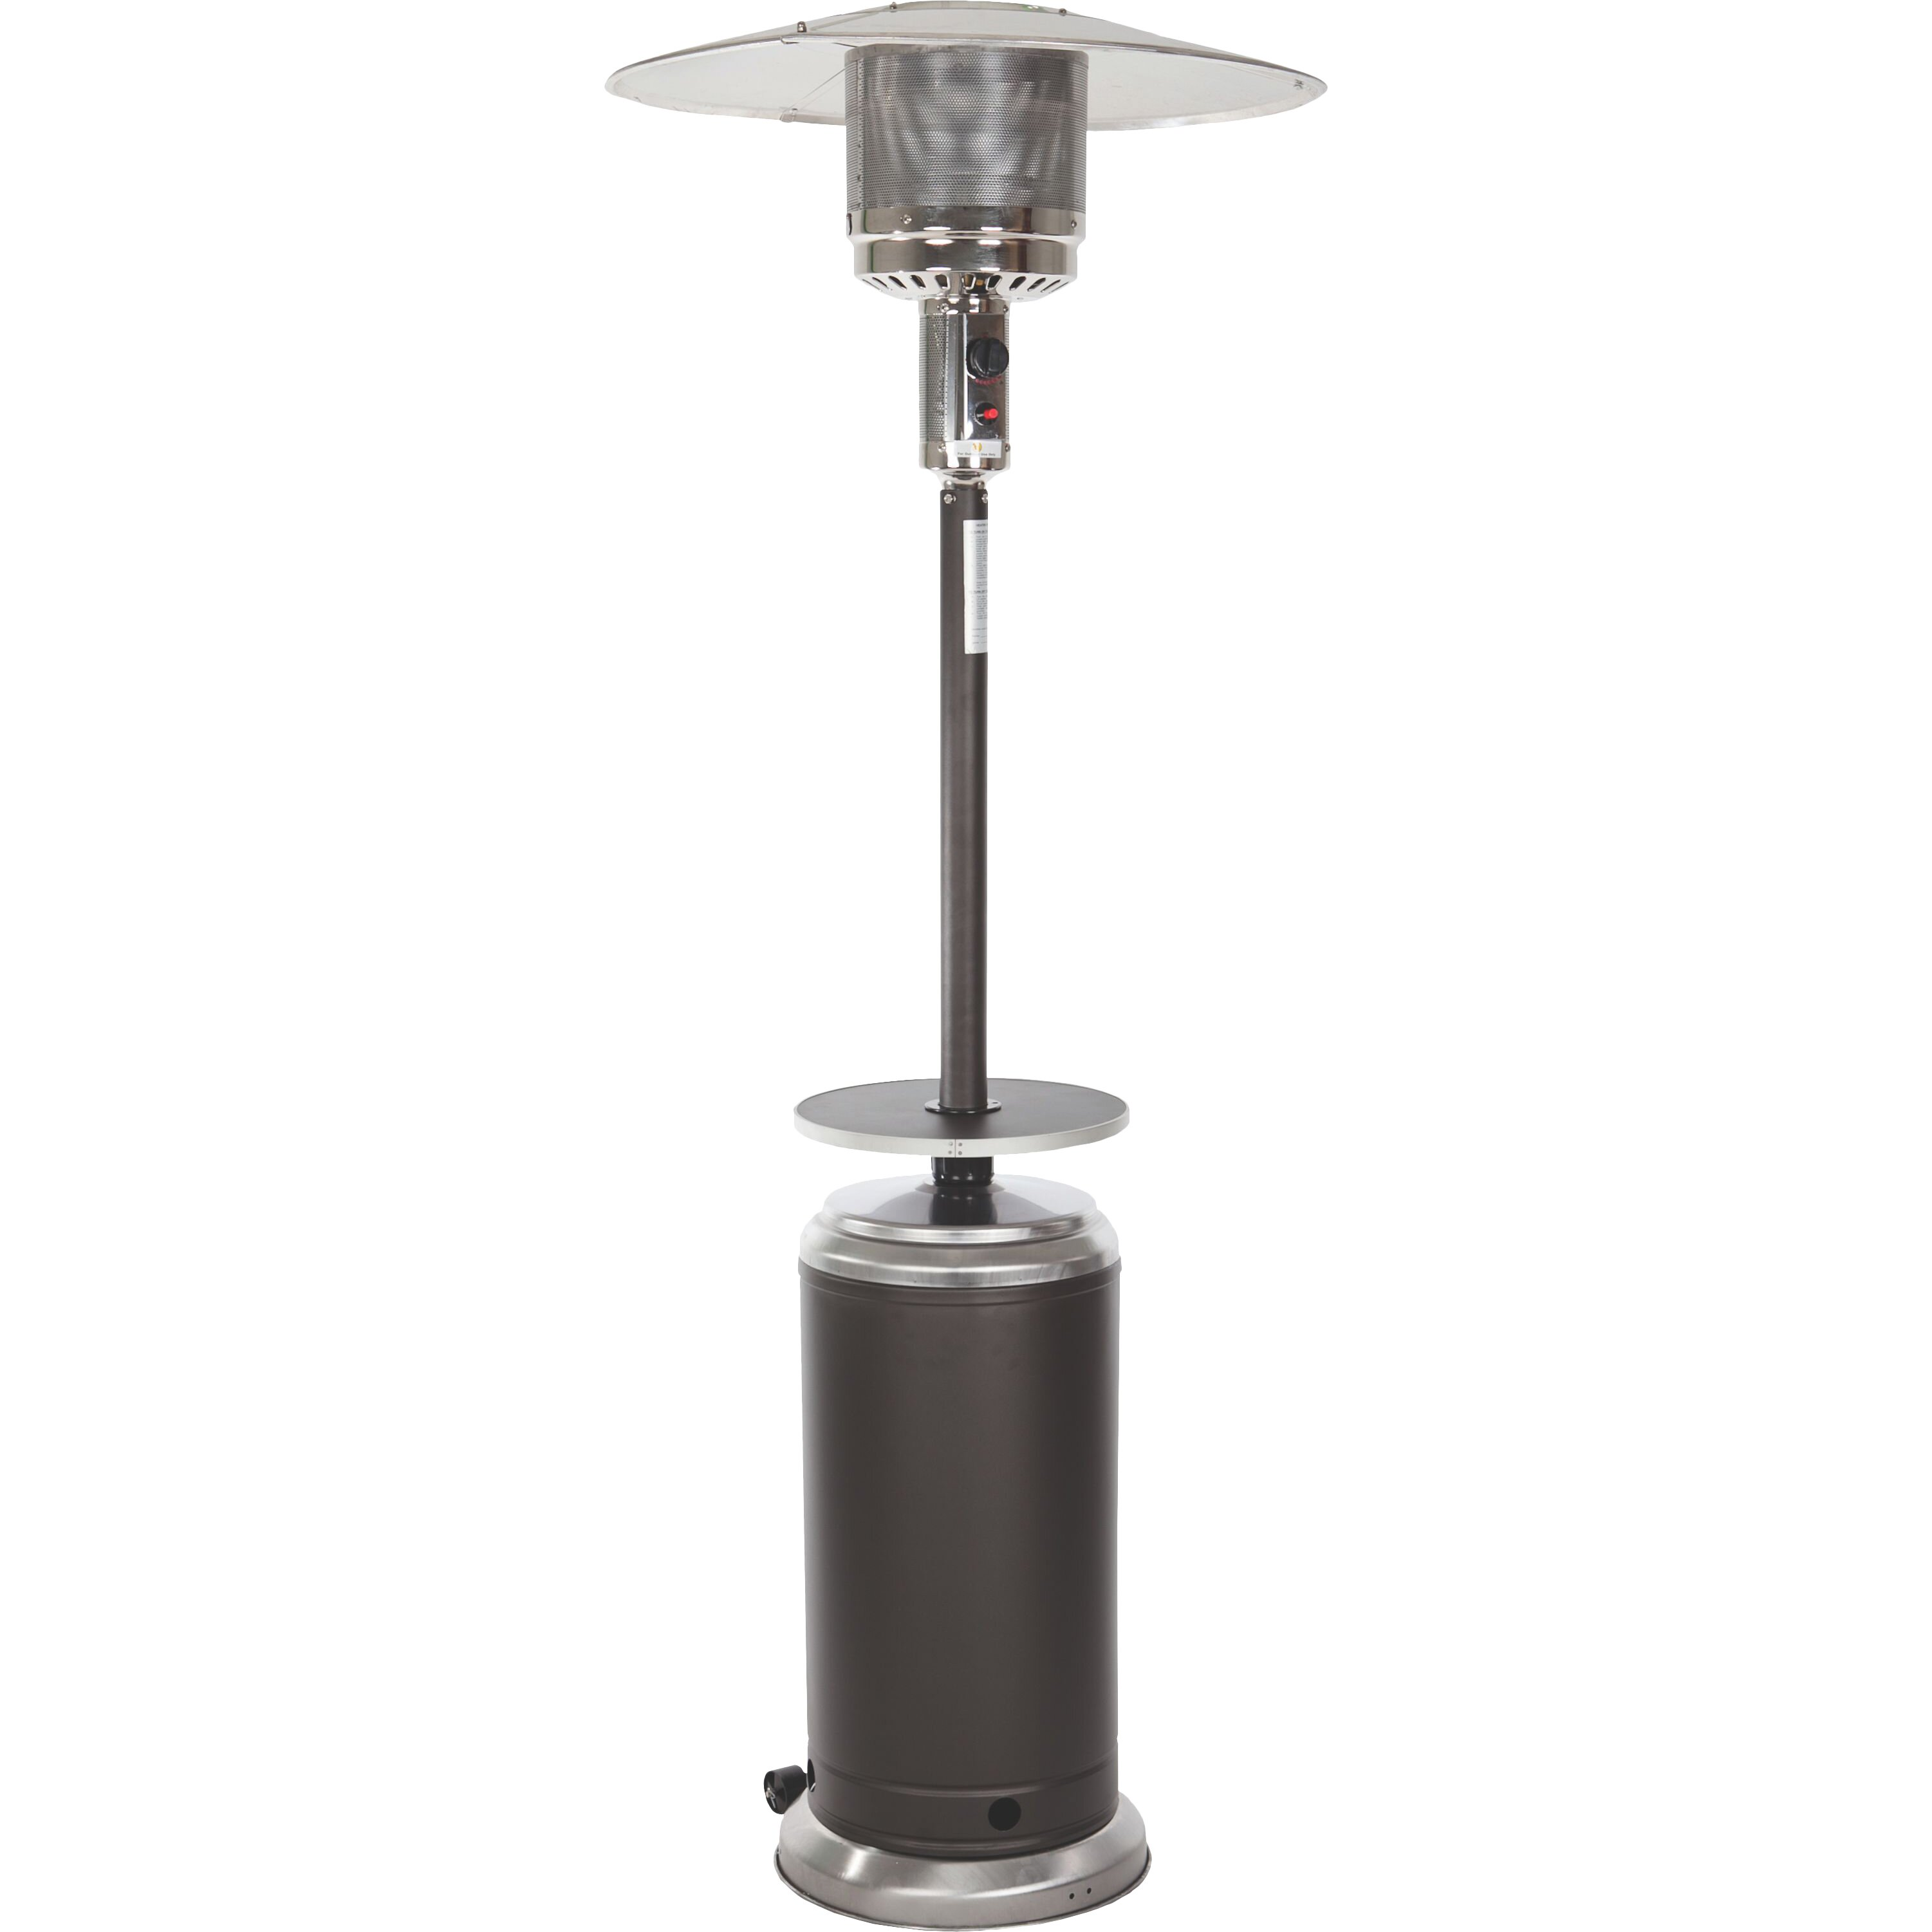 Stainless Steel Heaters : Fire sense stainless steel standard series propane patio